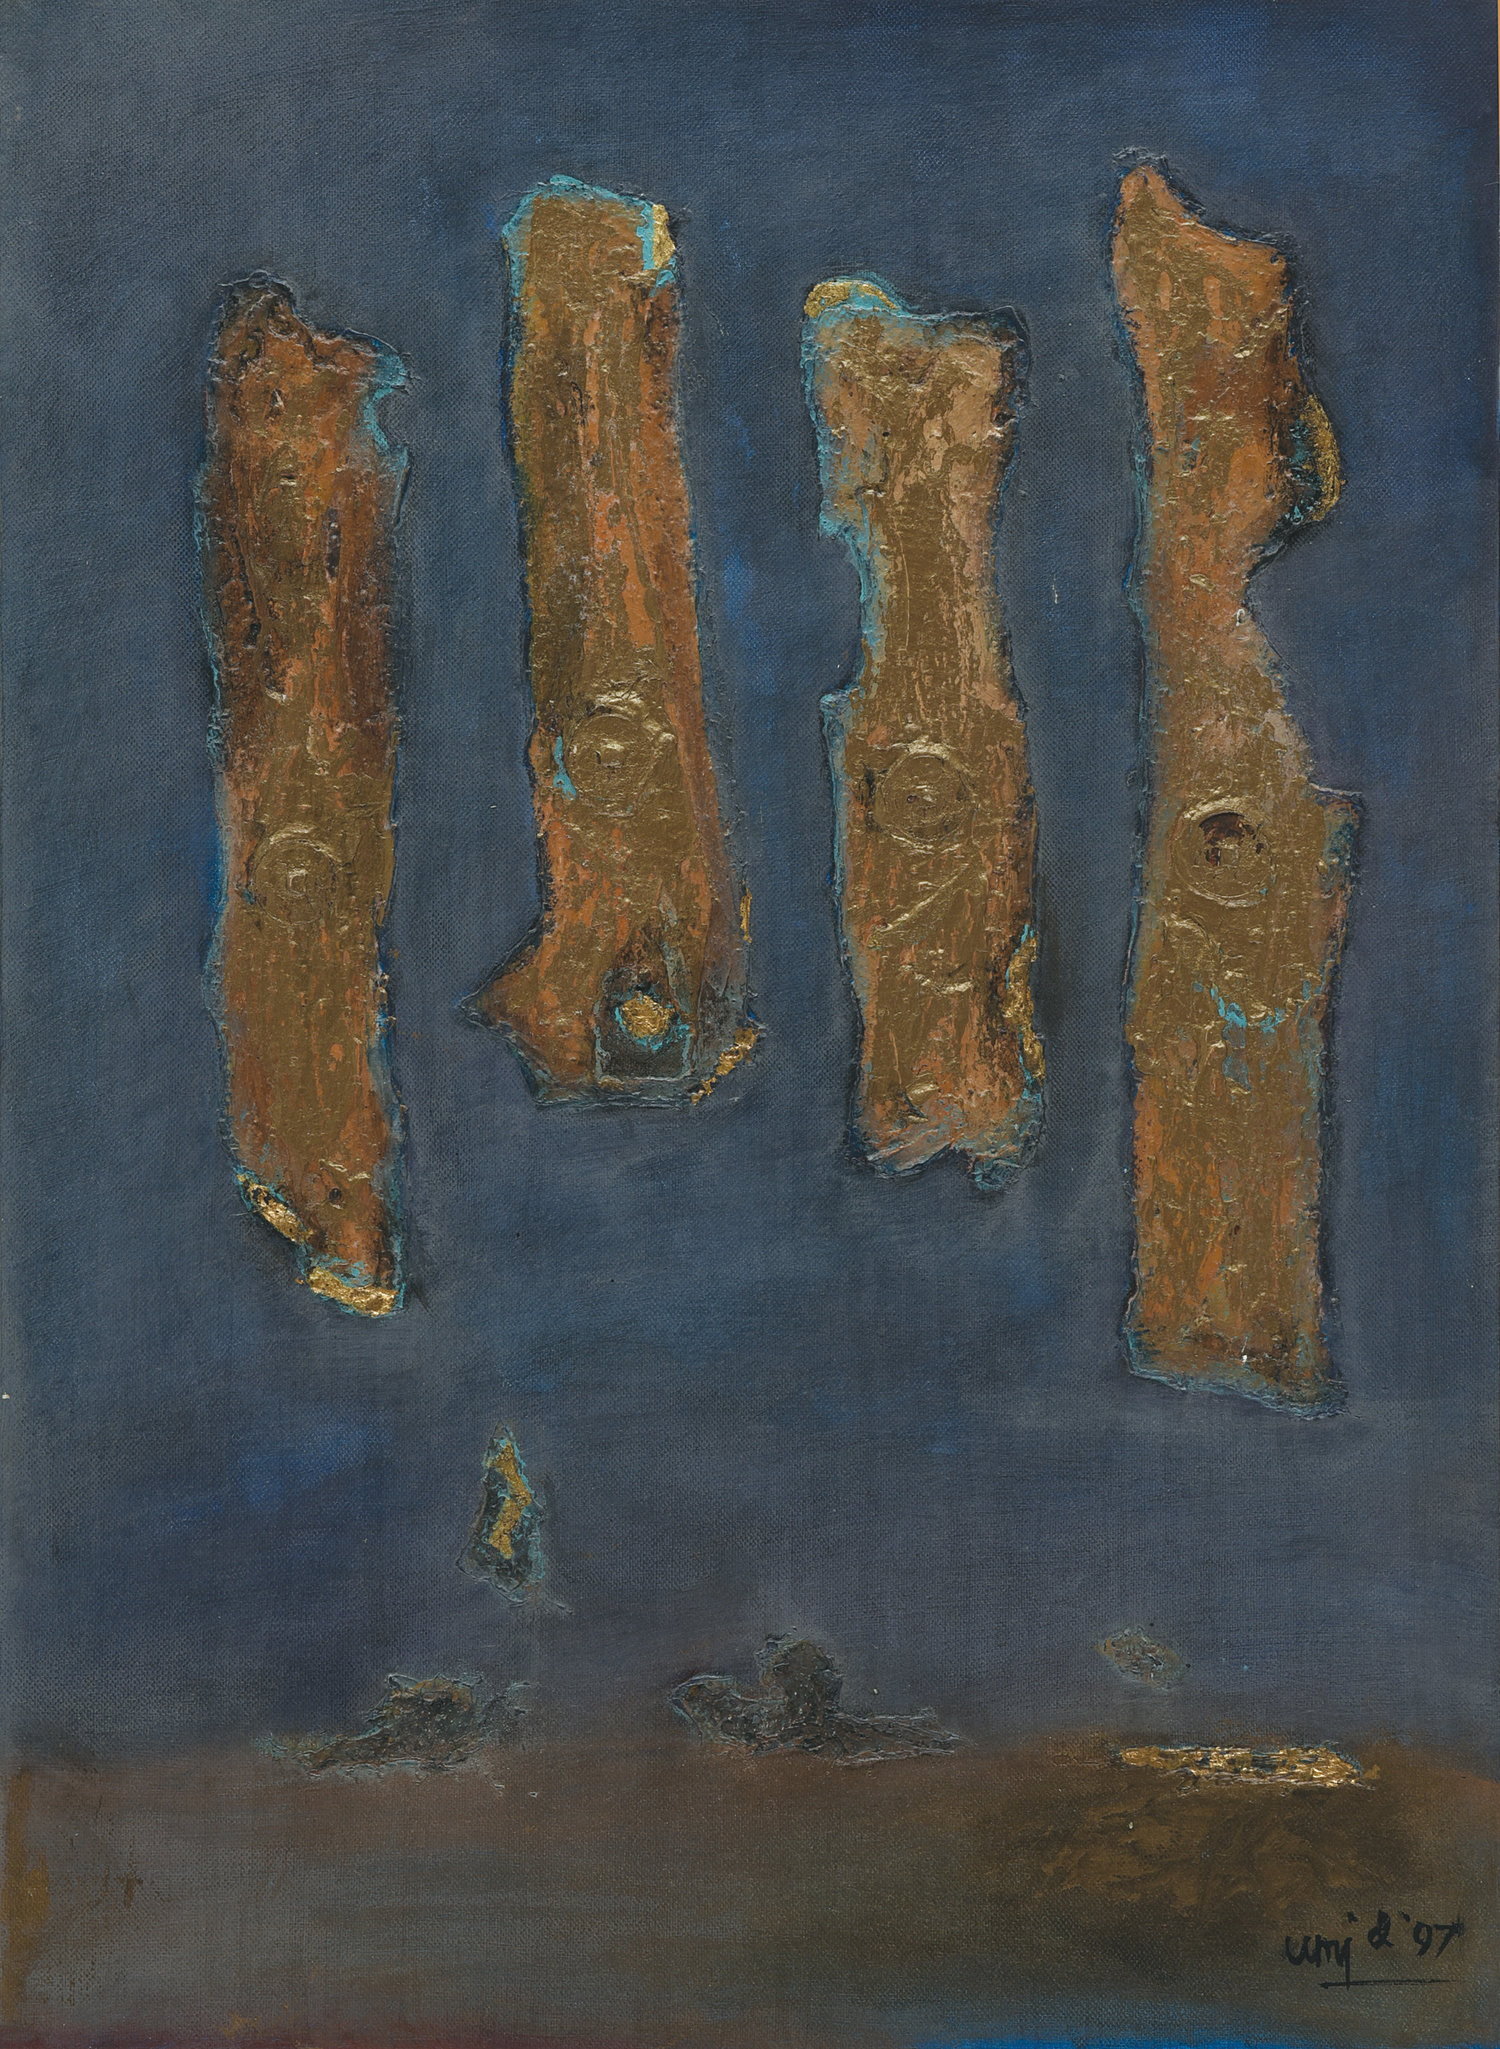 Umi Dachlan, Golden Pillars on Blue, 1997, mixed media on canvas